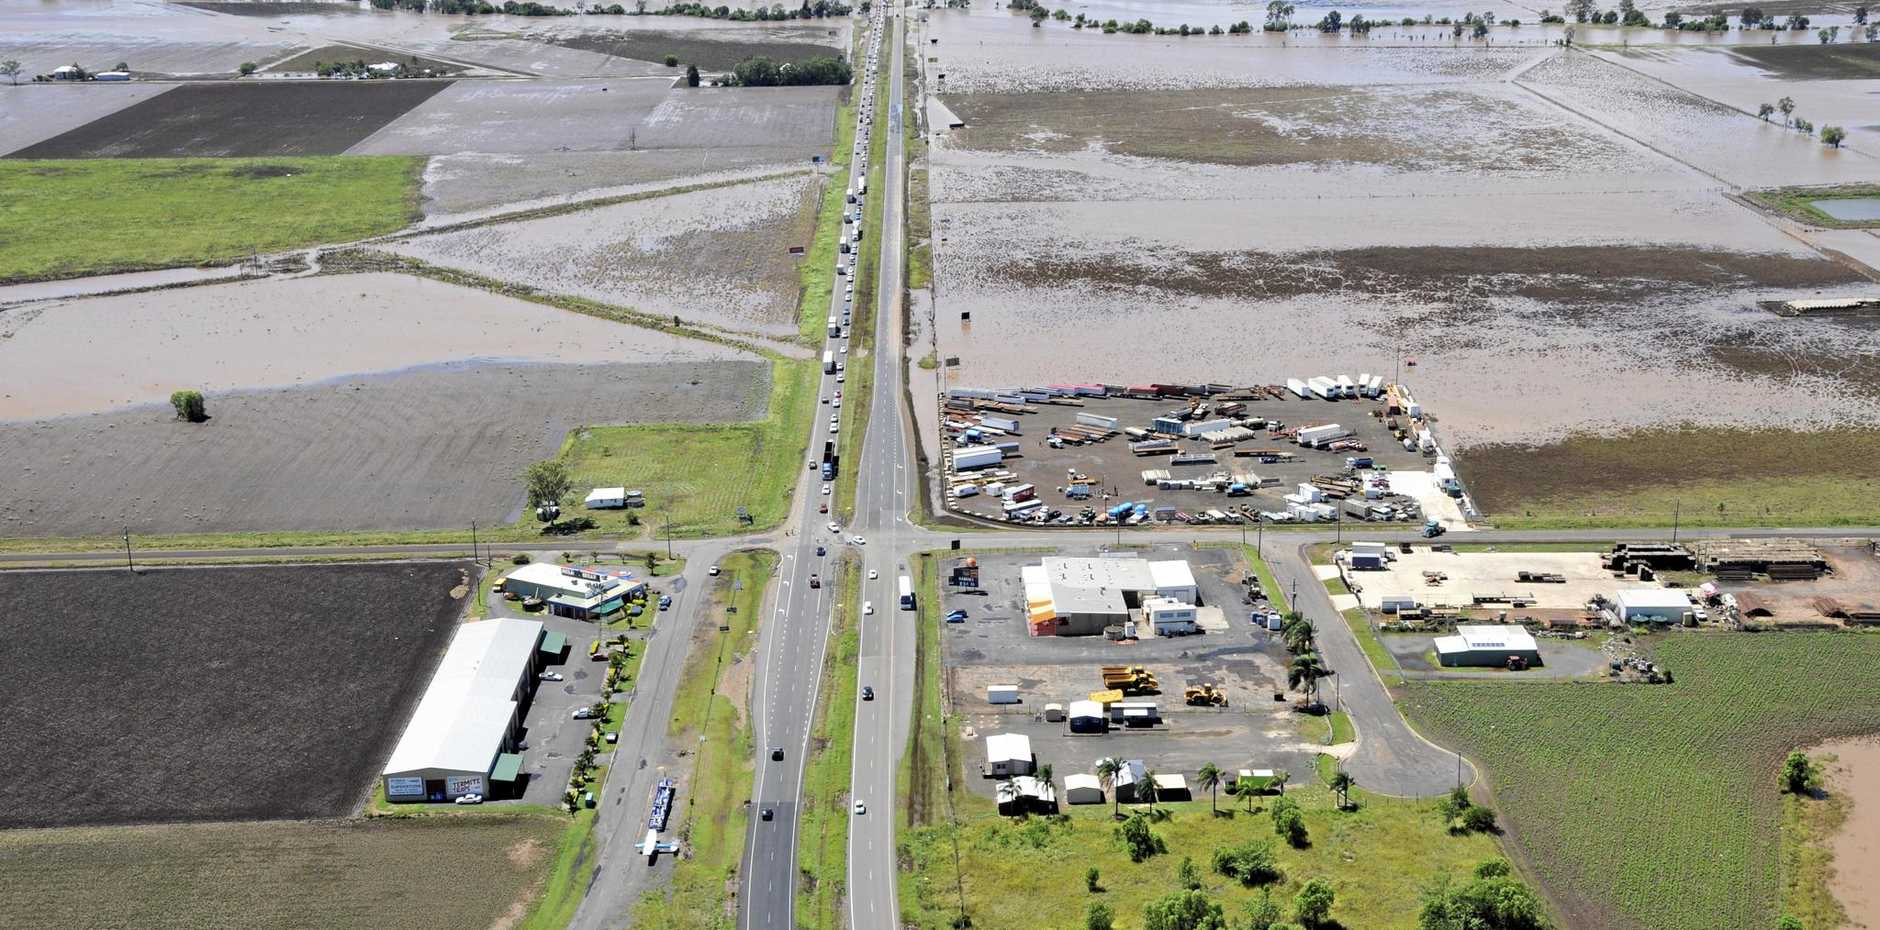 WET TIMES: Lockyer Valley post flood, Warrego Highway at Plainland that was cut by floodwater, during the 2013 Lockyer Valley floods.